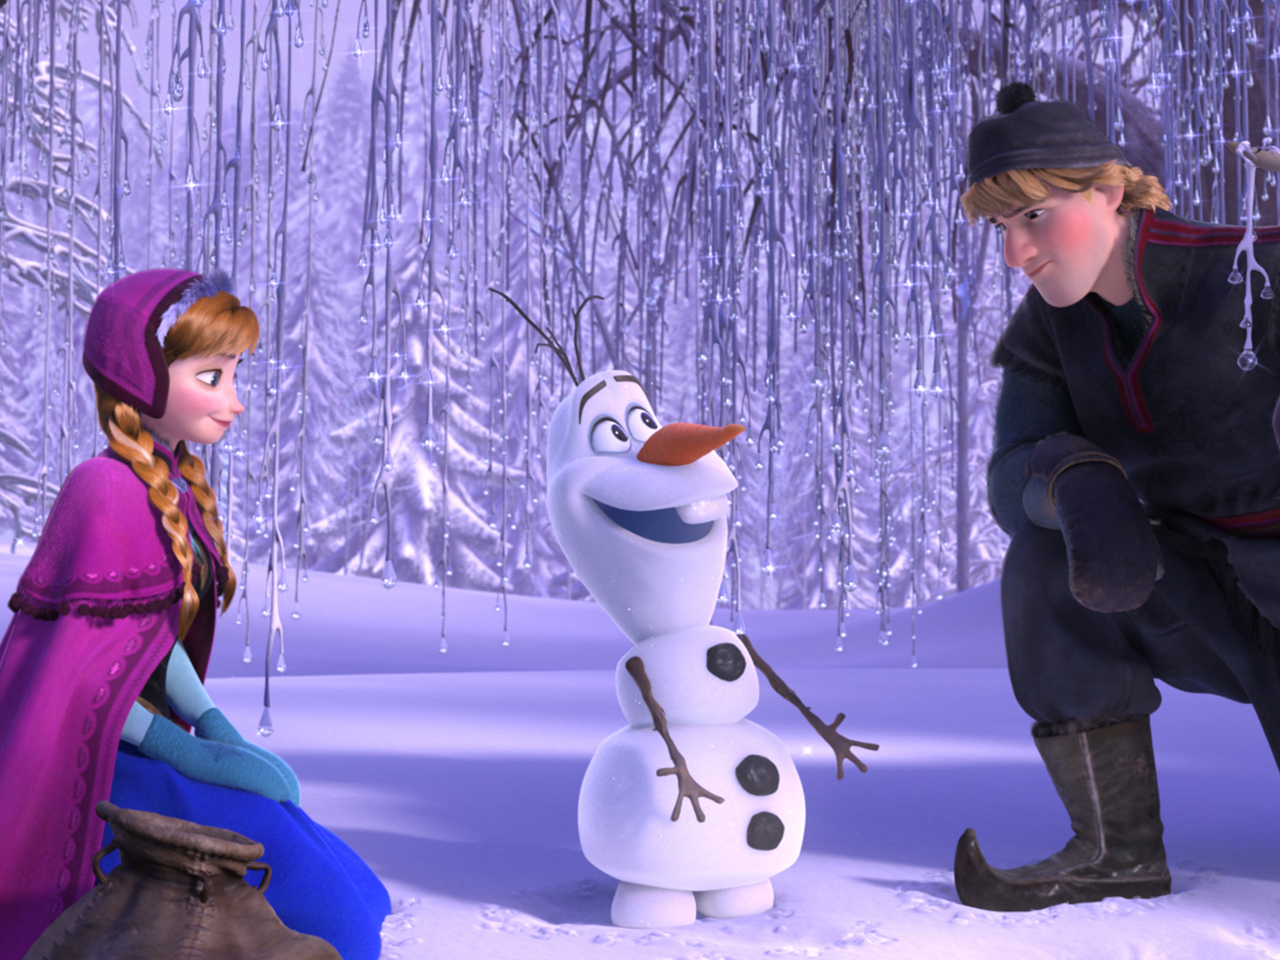 A still from the kids' animated movie Frozen